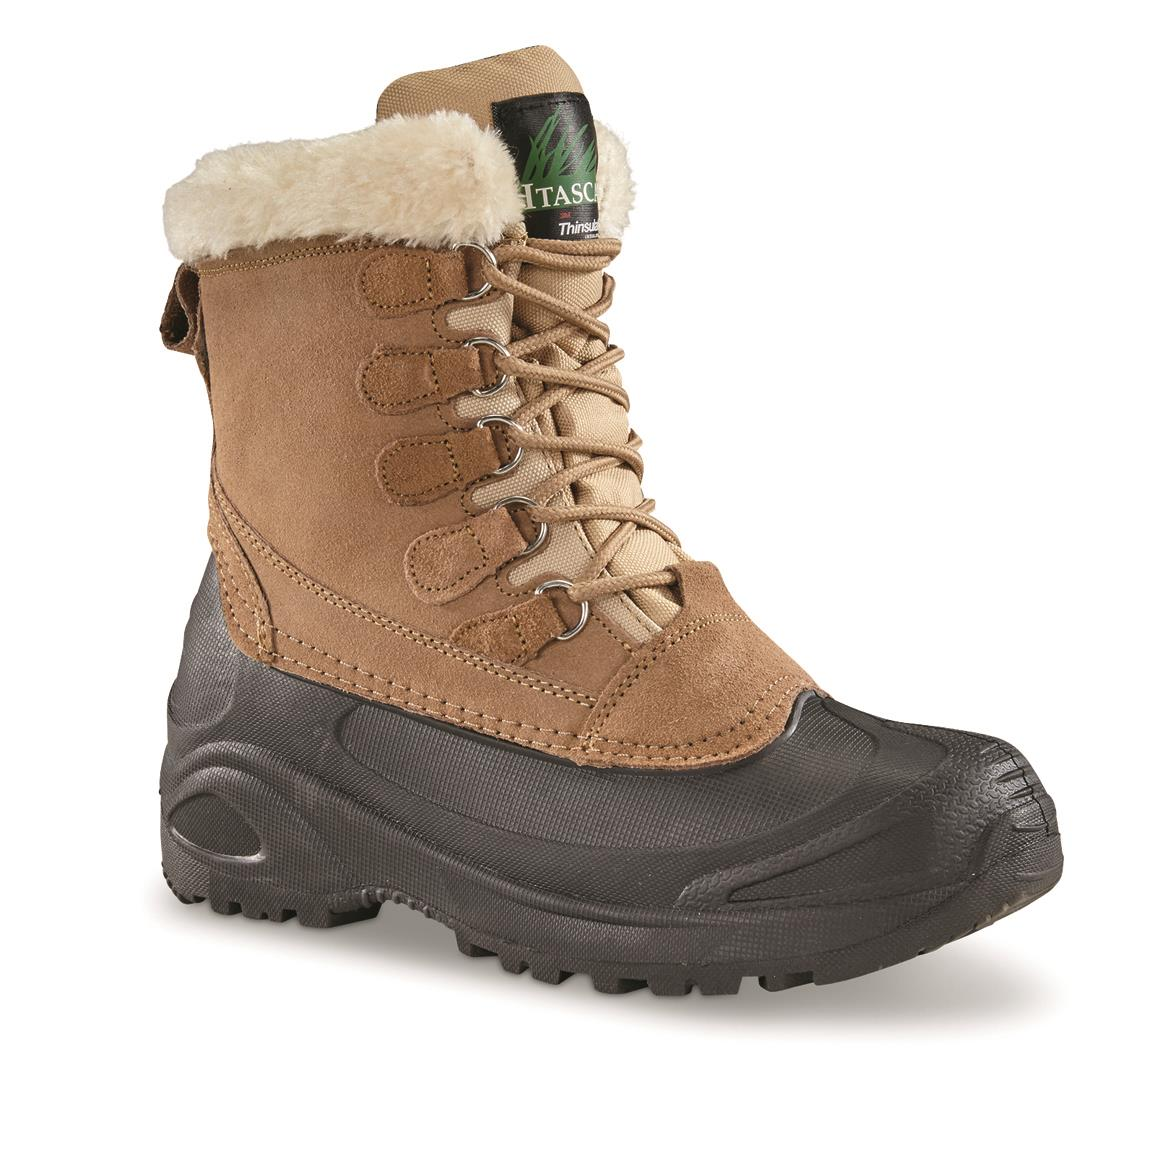 Women's Itasca™ Cedar Insulated Boots., Brown